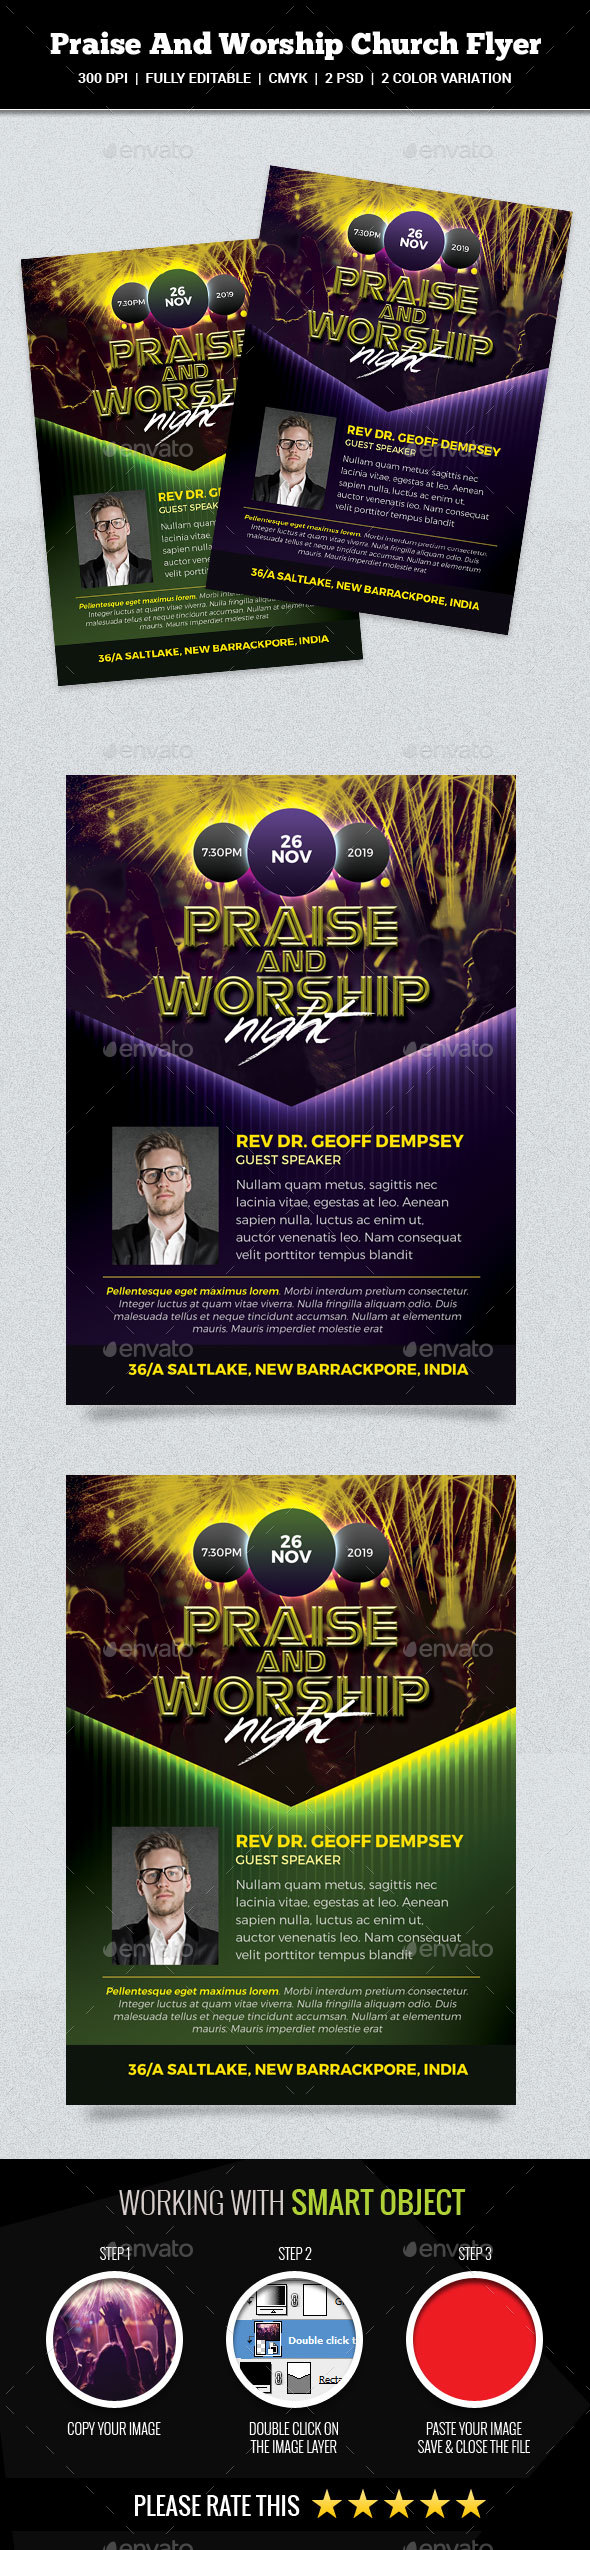 GraphicRiver Praise And Worship Night Church Flyer 20968683